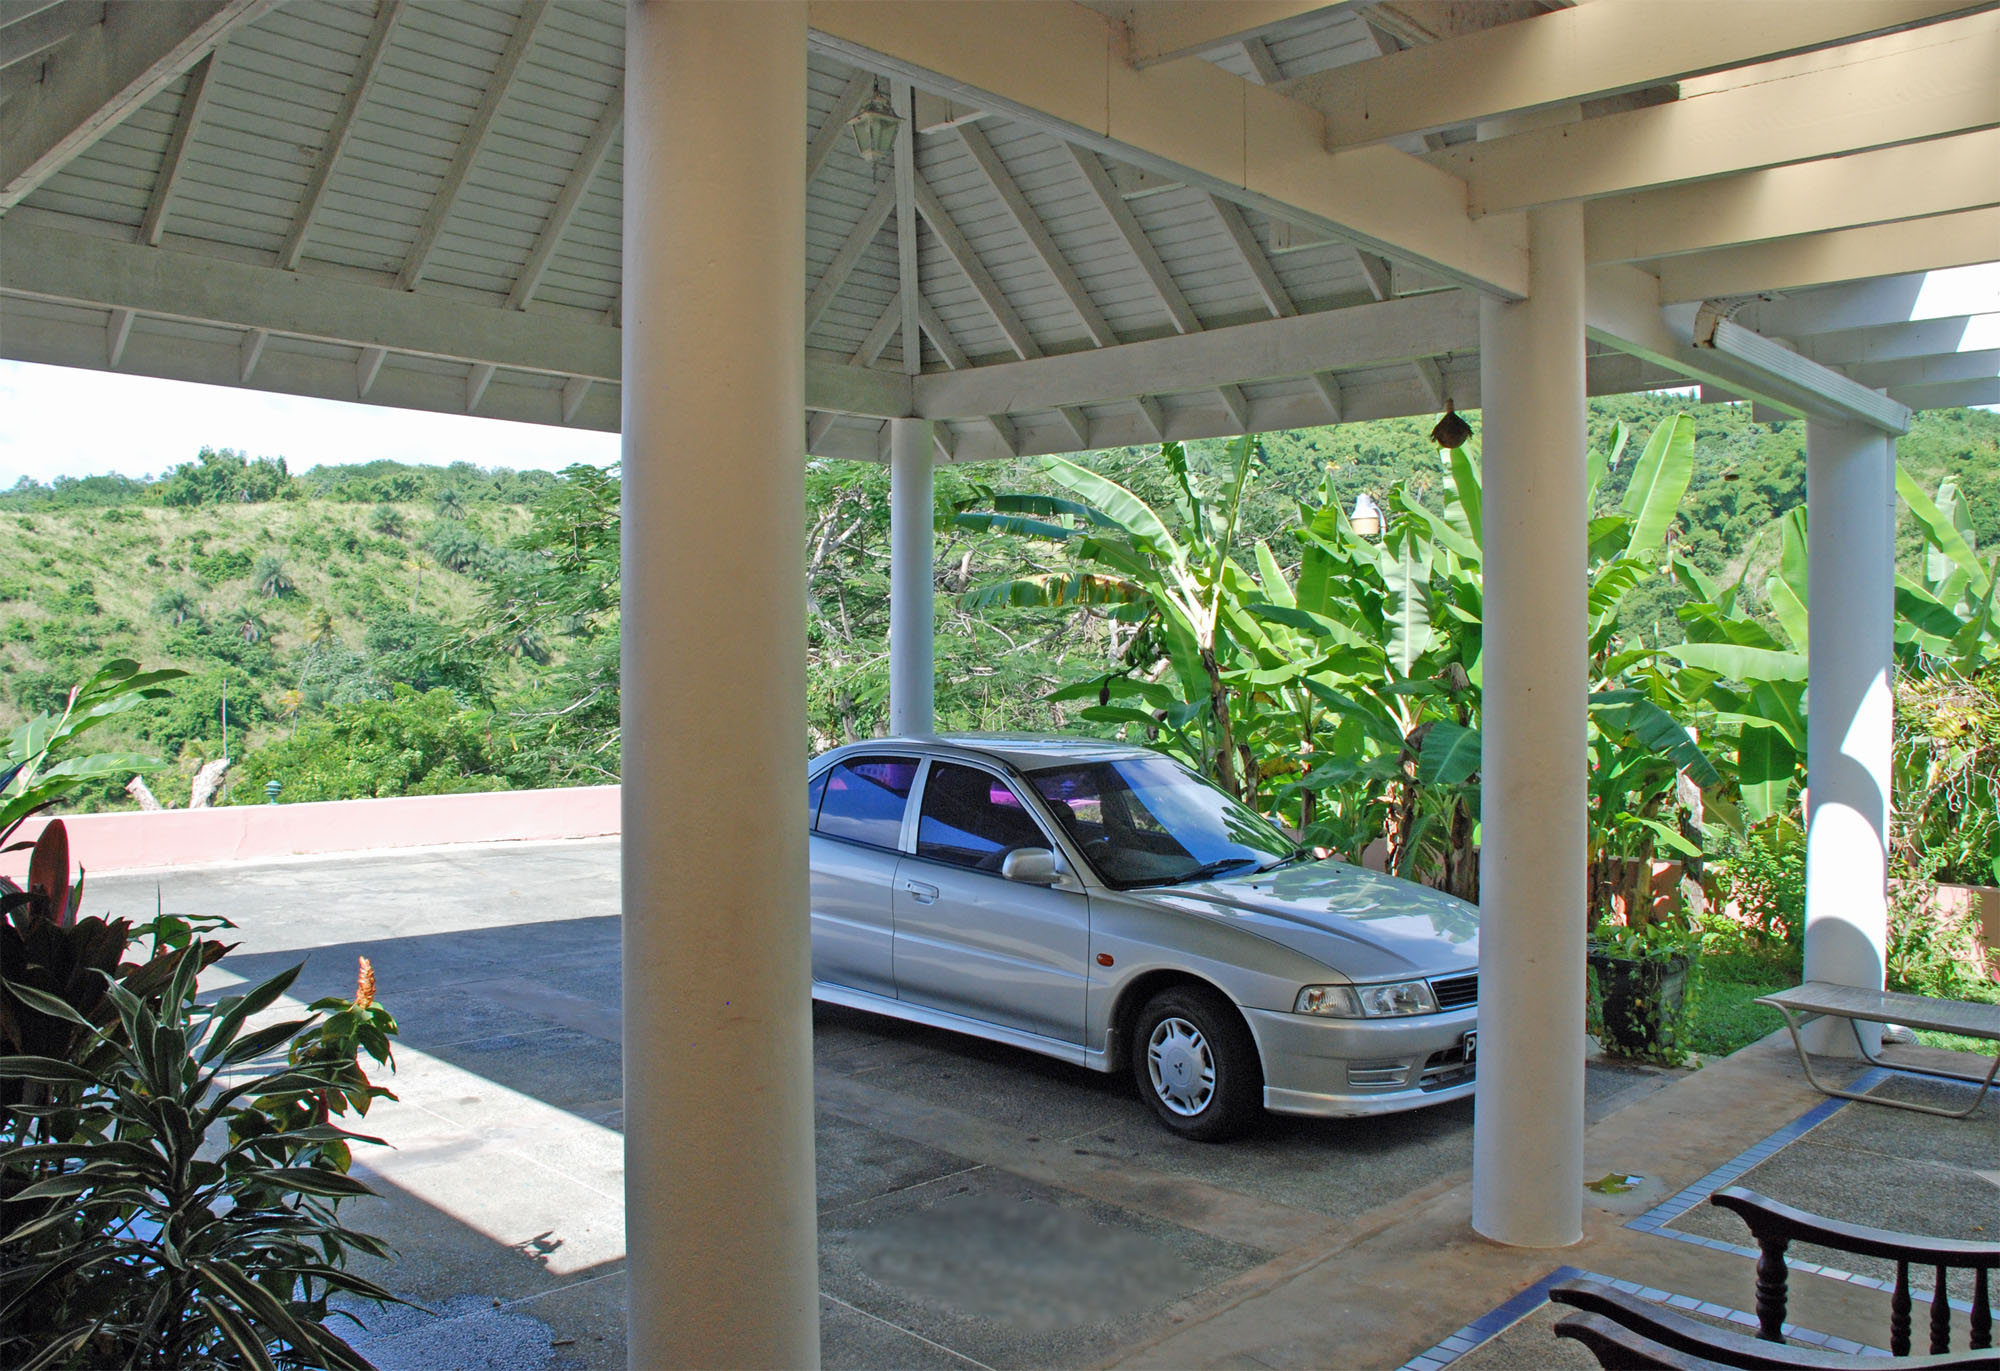 SOL Y MAR VILLA, TOBAGO W.I. Carport on upper level with covered entrance to breakfast area and kitchen